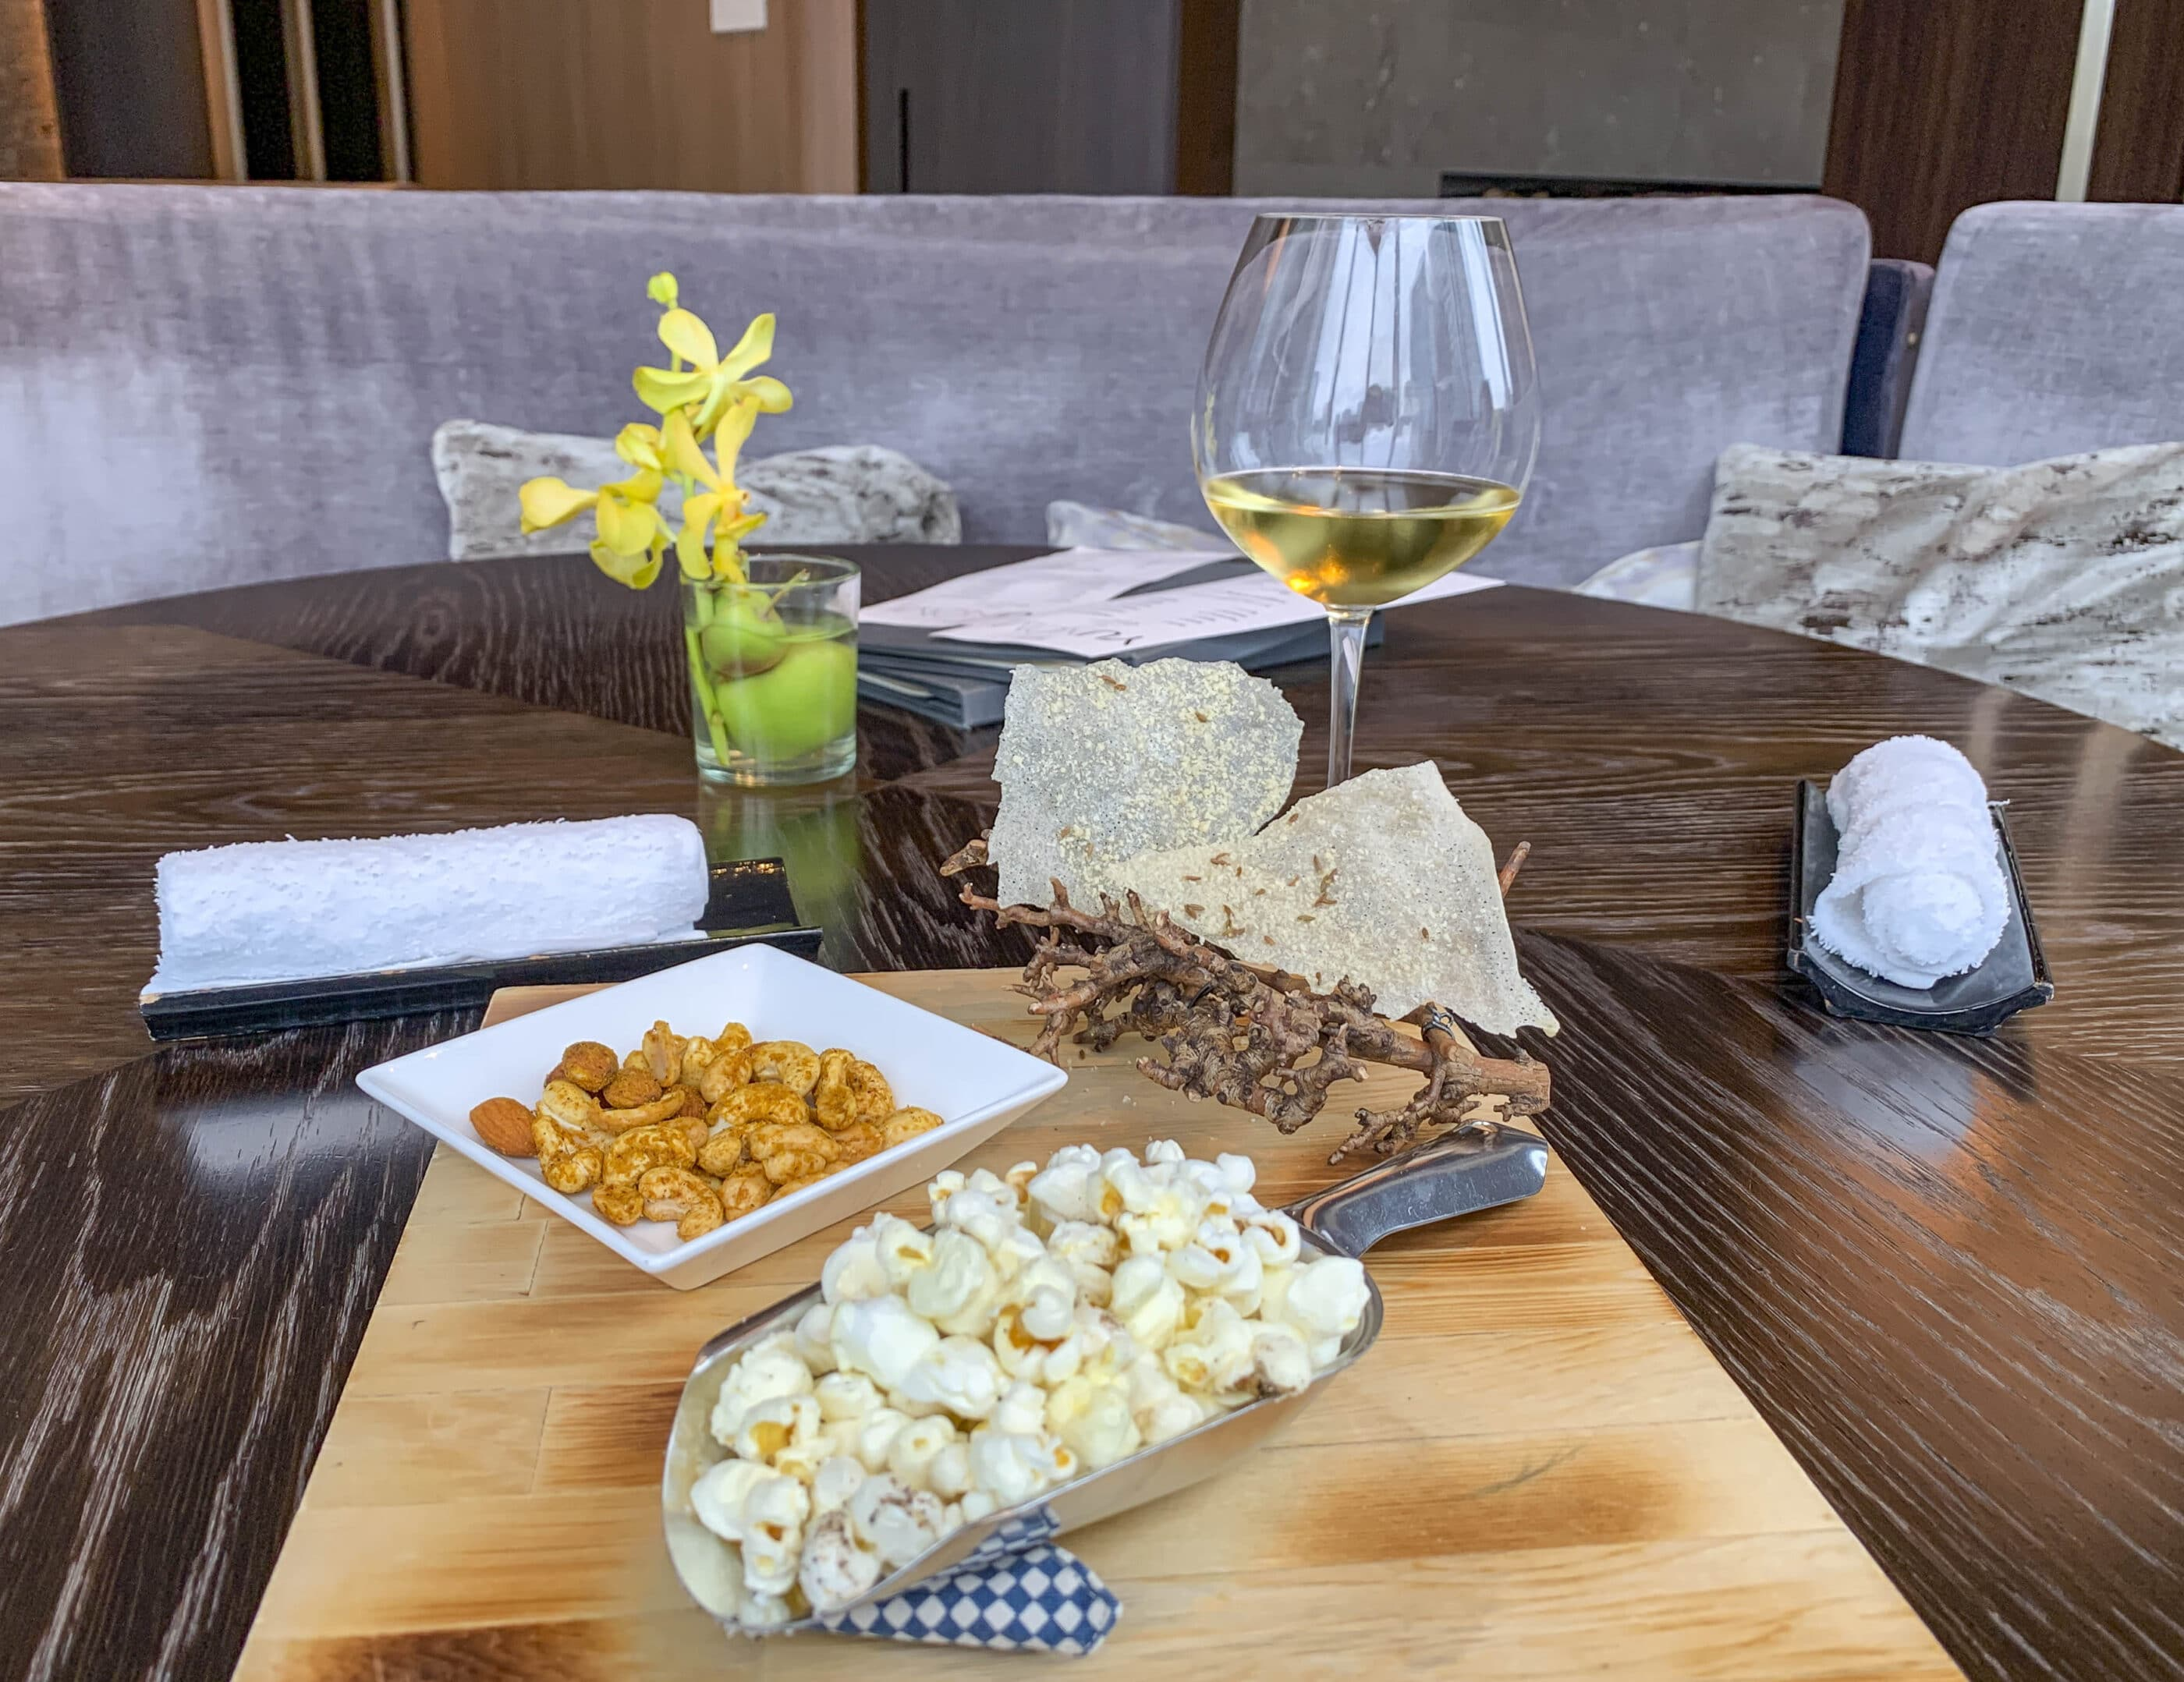 Beautifully plated bar snacks on a wooden board next to a glass of white wine in the Motif bar.